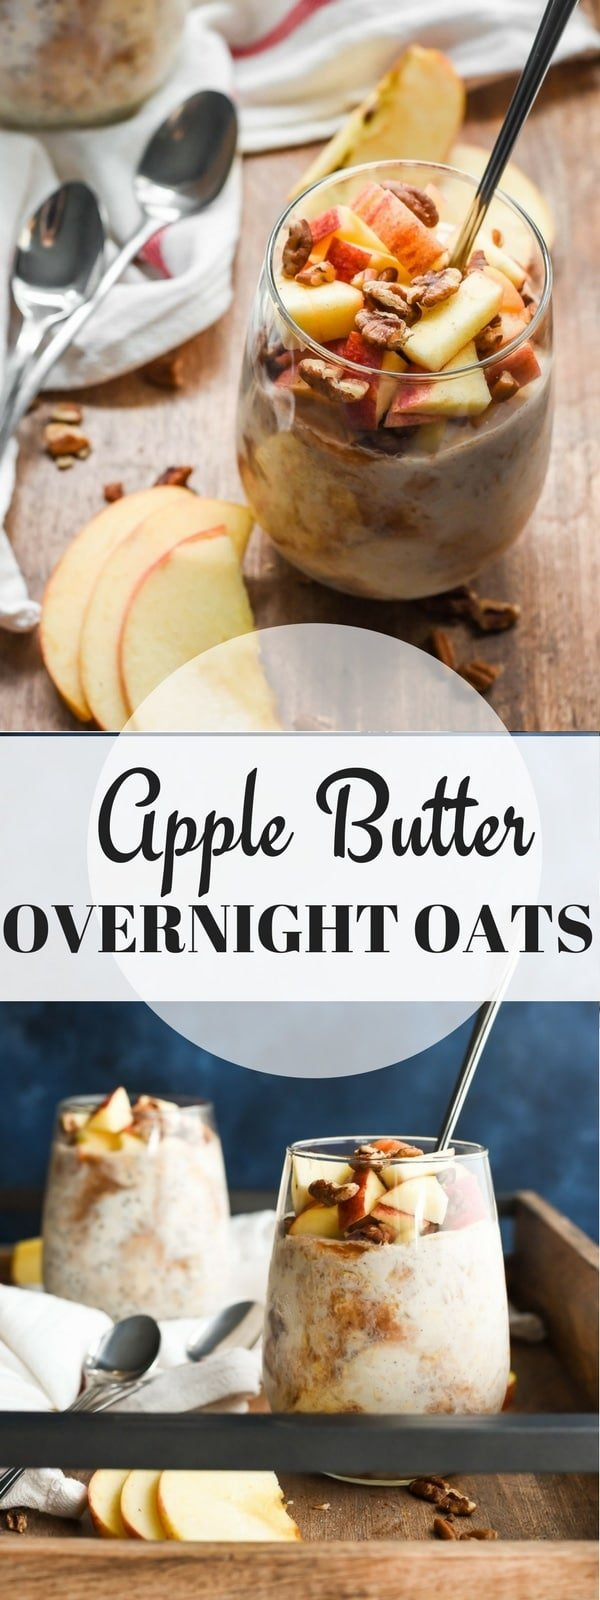 Make these easy Apple Butter Overnight Oats for a subtly spiced, healthy breakfast that's perfect for fall!